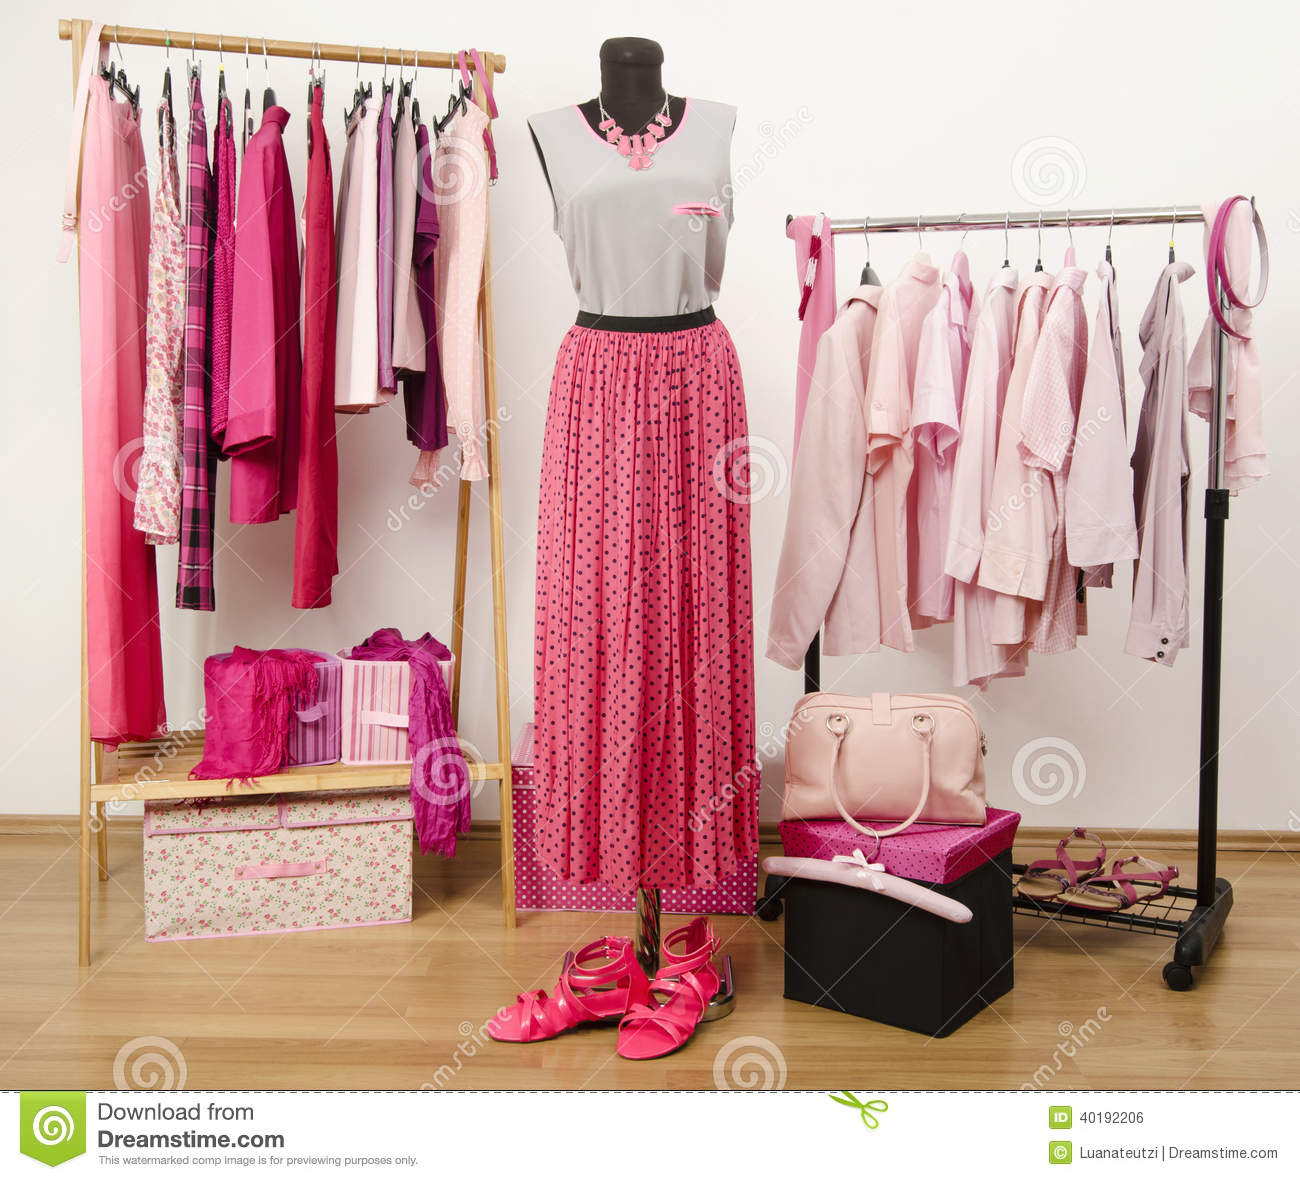 Dressing Closet With Pink Clothes Arranged On Hangers And An Outfit On A Mannequin Stock Photo